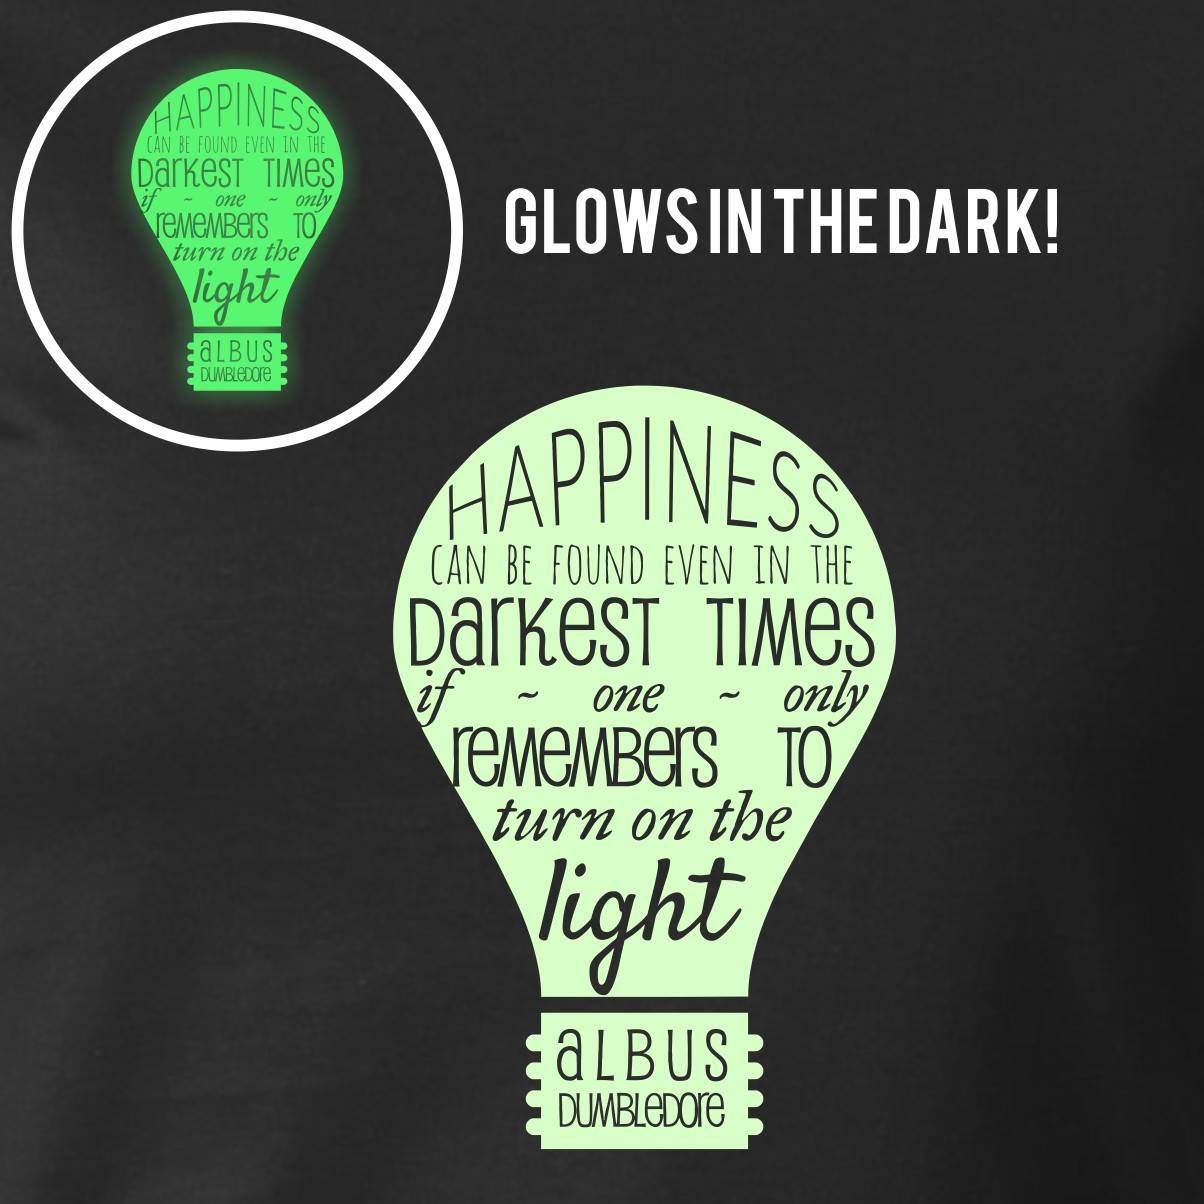 HAPPINESS GLOW IN THE DARK